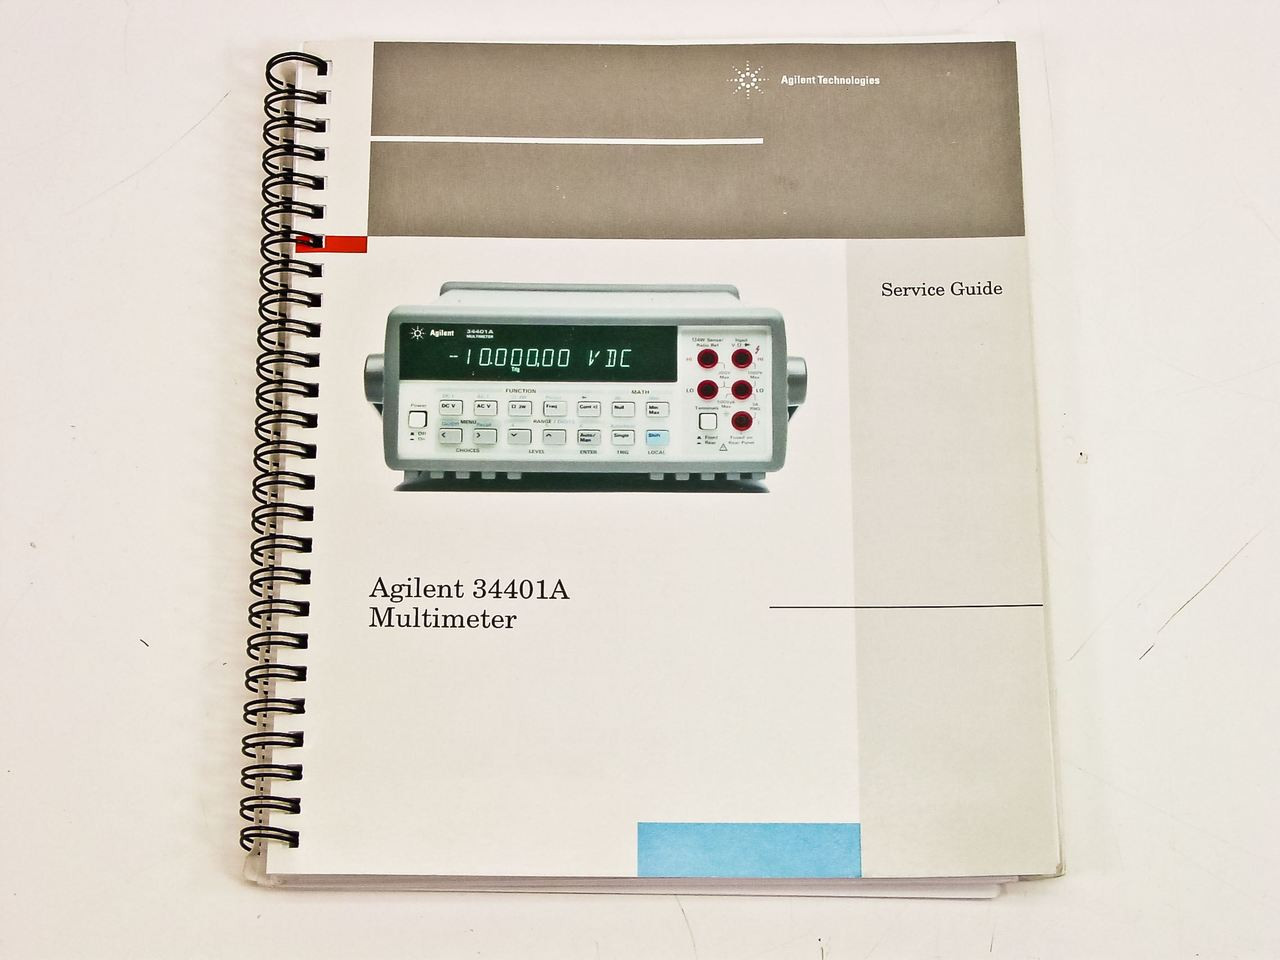 agilent 34401a service guide edition 5 recycledgoods com rh recycledgoods com agilent 34401a service manual Agilent 33220A